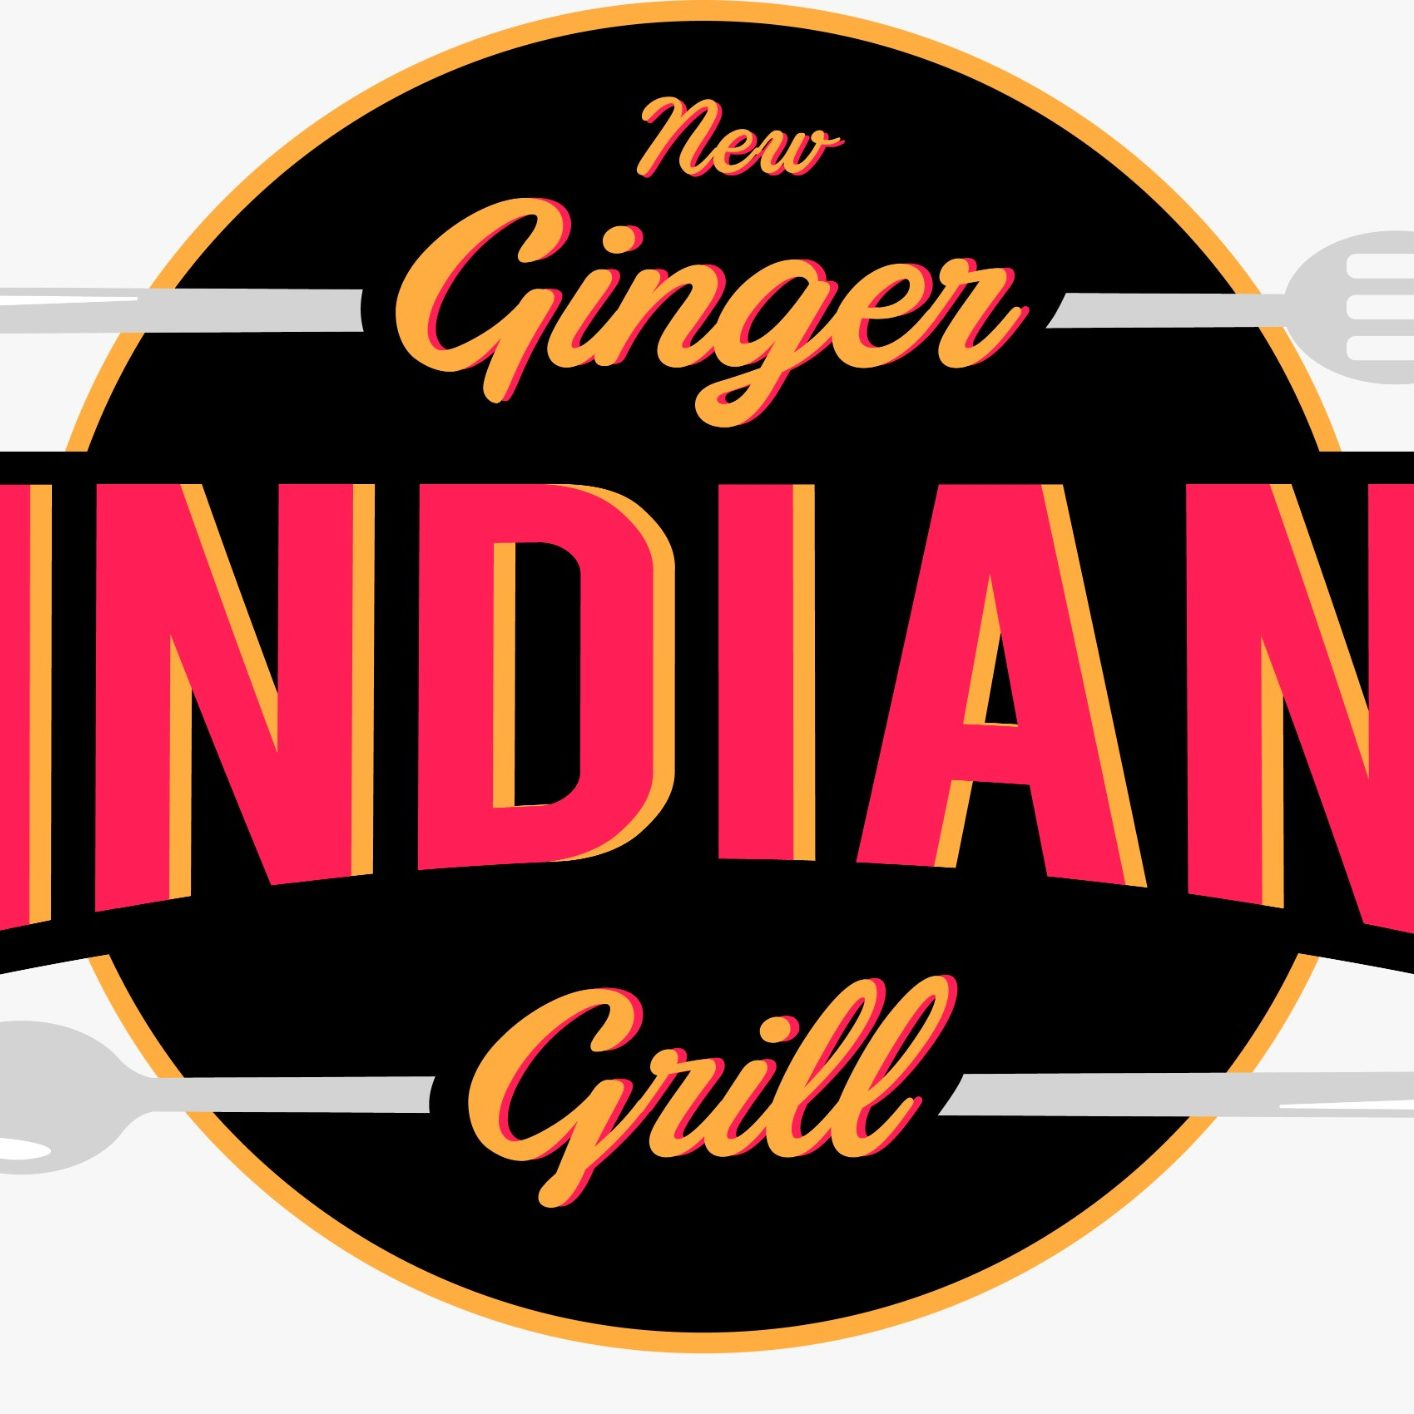 New Ginger Indian Grill Logo